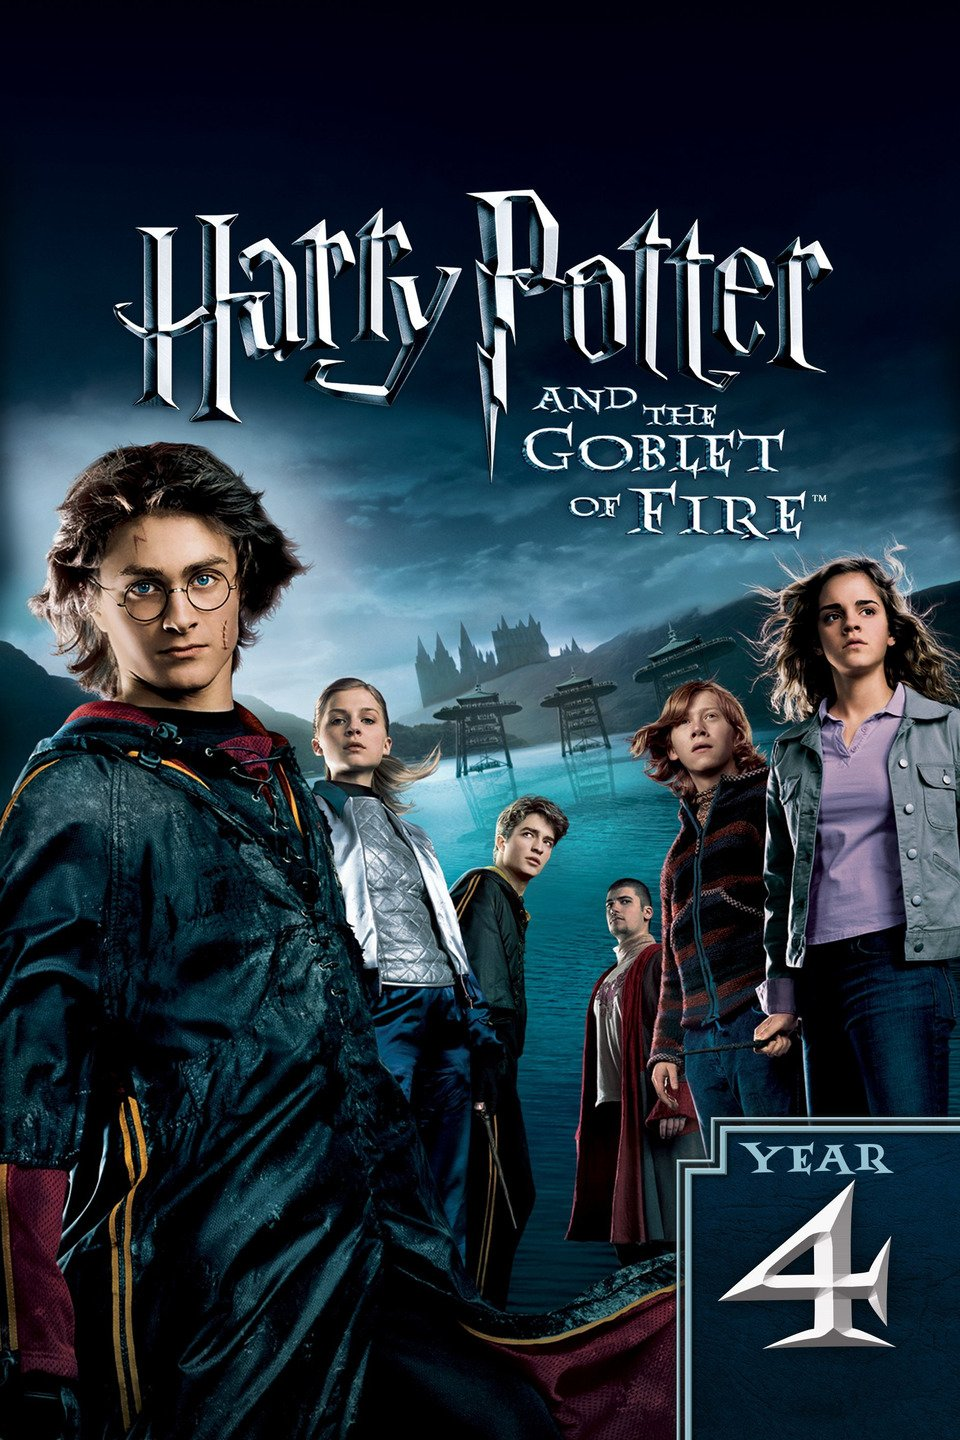 harry potter and the goblet of fire movie 2005 free download dual audio